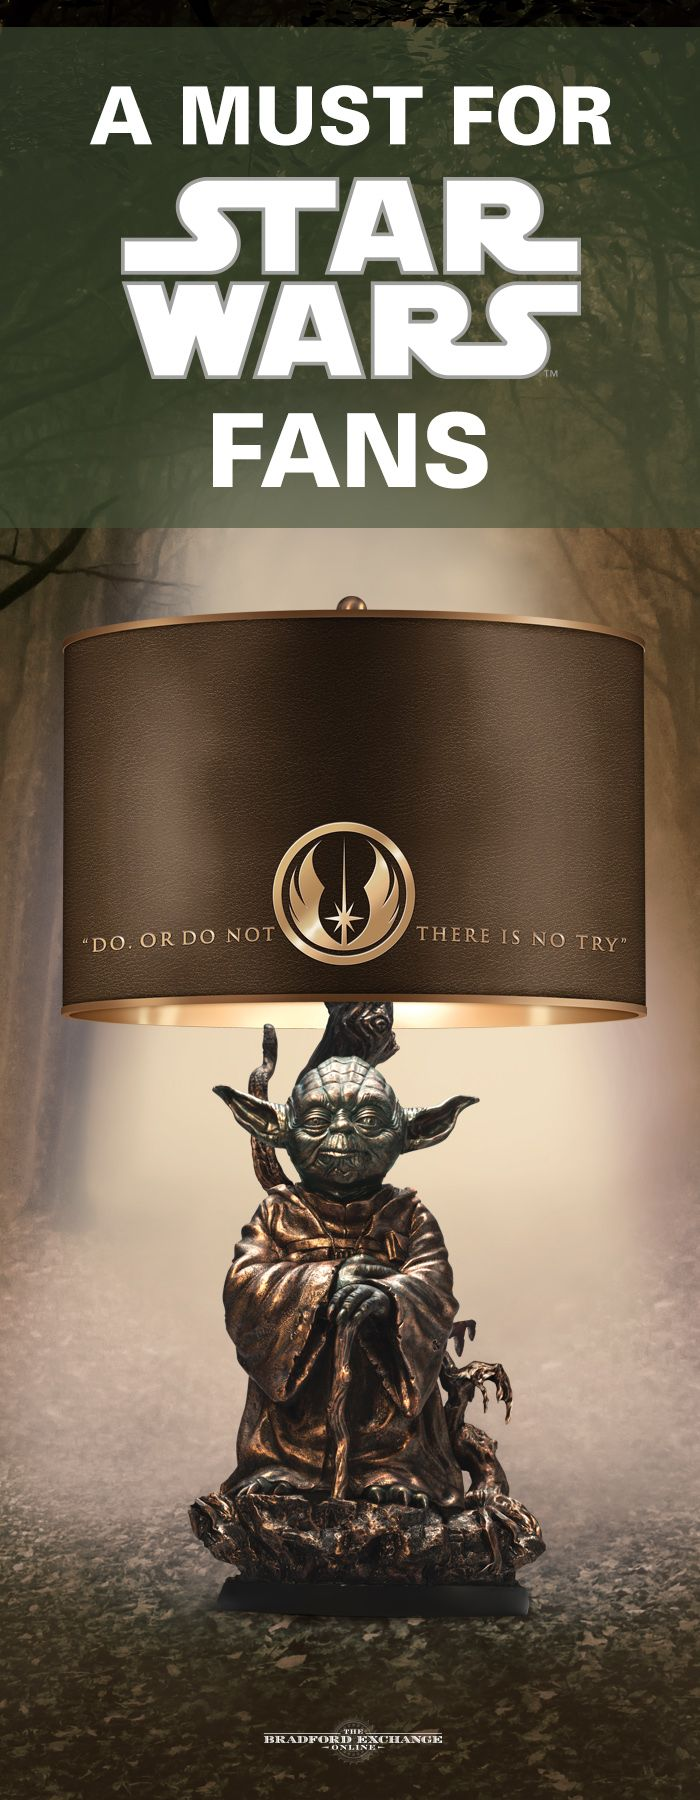 "Set the wisdom of Jedi Master Yoda aglow! This officially-licensed STAR WARS lamp showcases the iconic Jedi Master in a museum-quality cold-cast bronze sculpt. Plus, Yoda's inspiring words grace the cloth shade: ""DO. OR DO NOT. THERE IS NO TRY."""